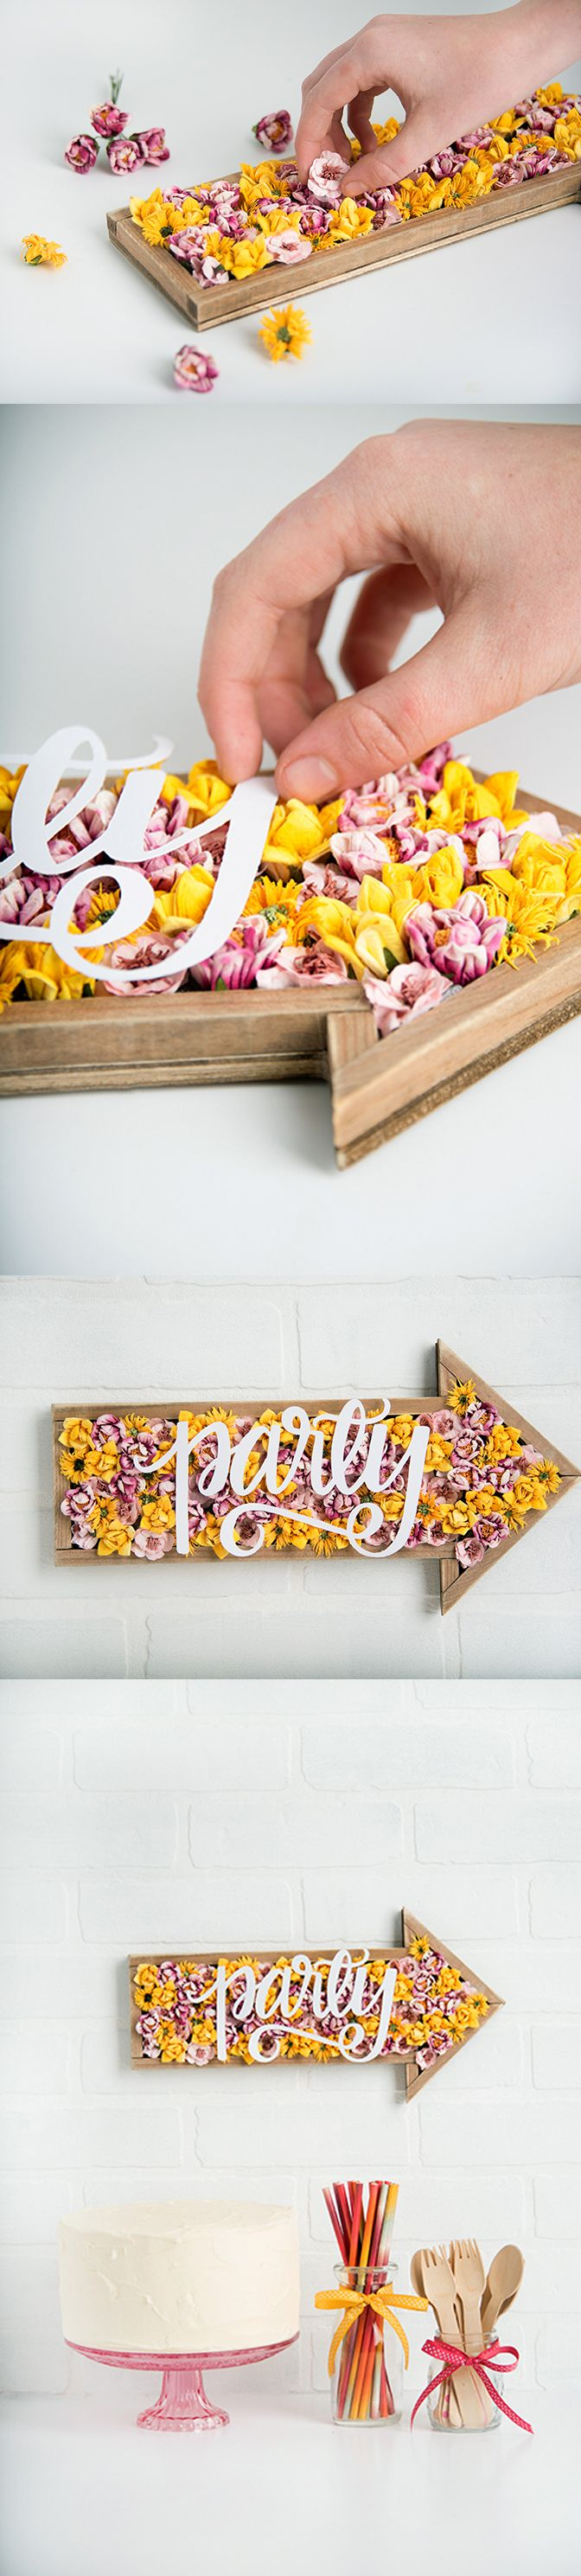 Free SVG file for your Cricut Explore. Cut this adorable hand lettered party sign for your next soiree!